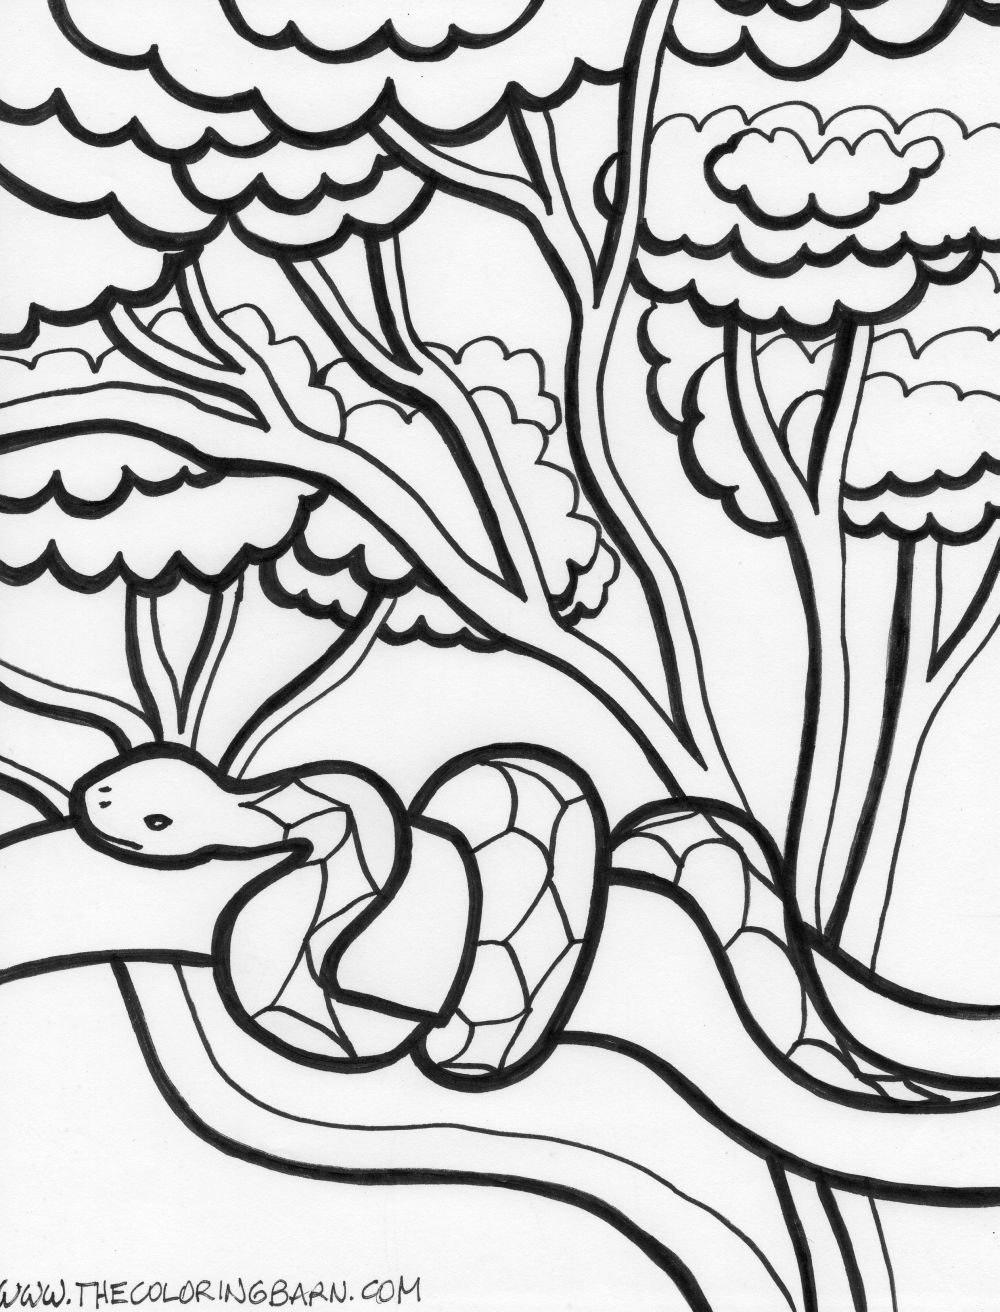 1000x1312 Coloring Picture Printable Snake Coloring Pages Coloring Me, Snake